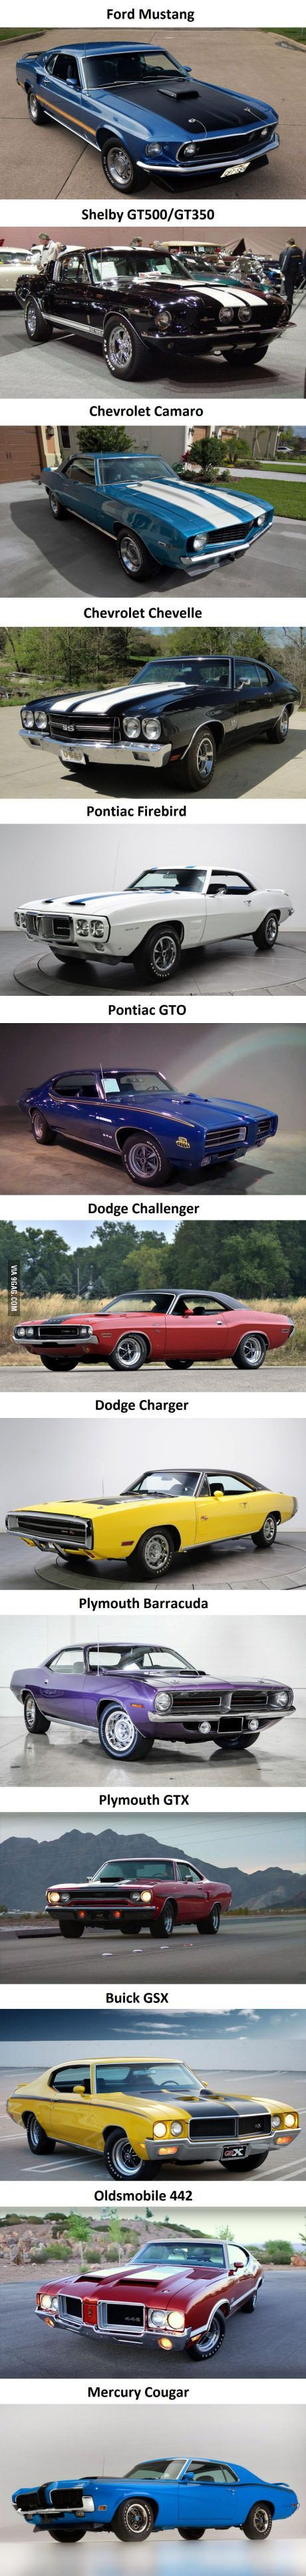 Photo of The Most Iconic Muscle Cars